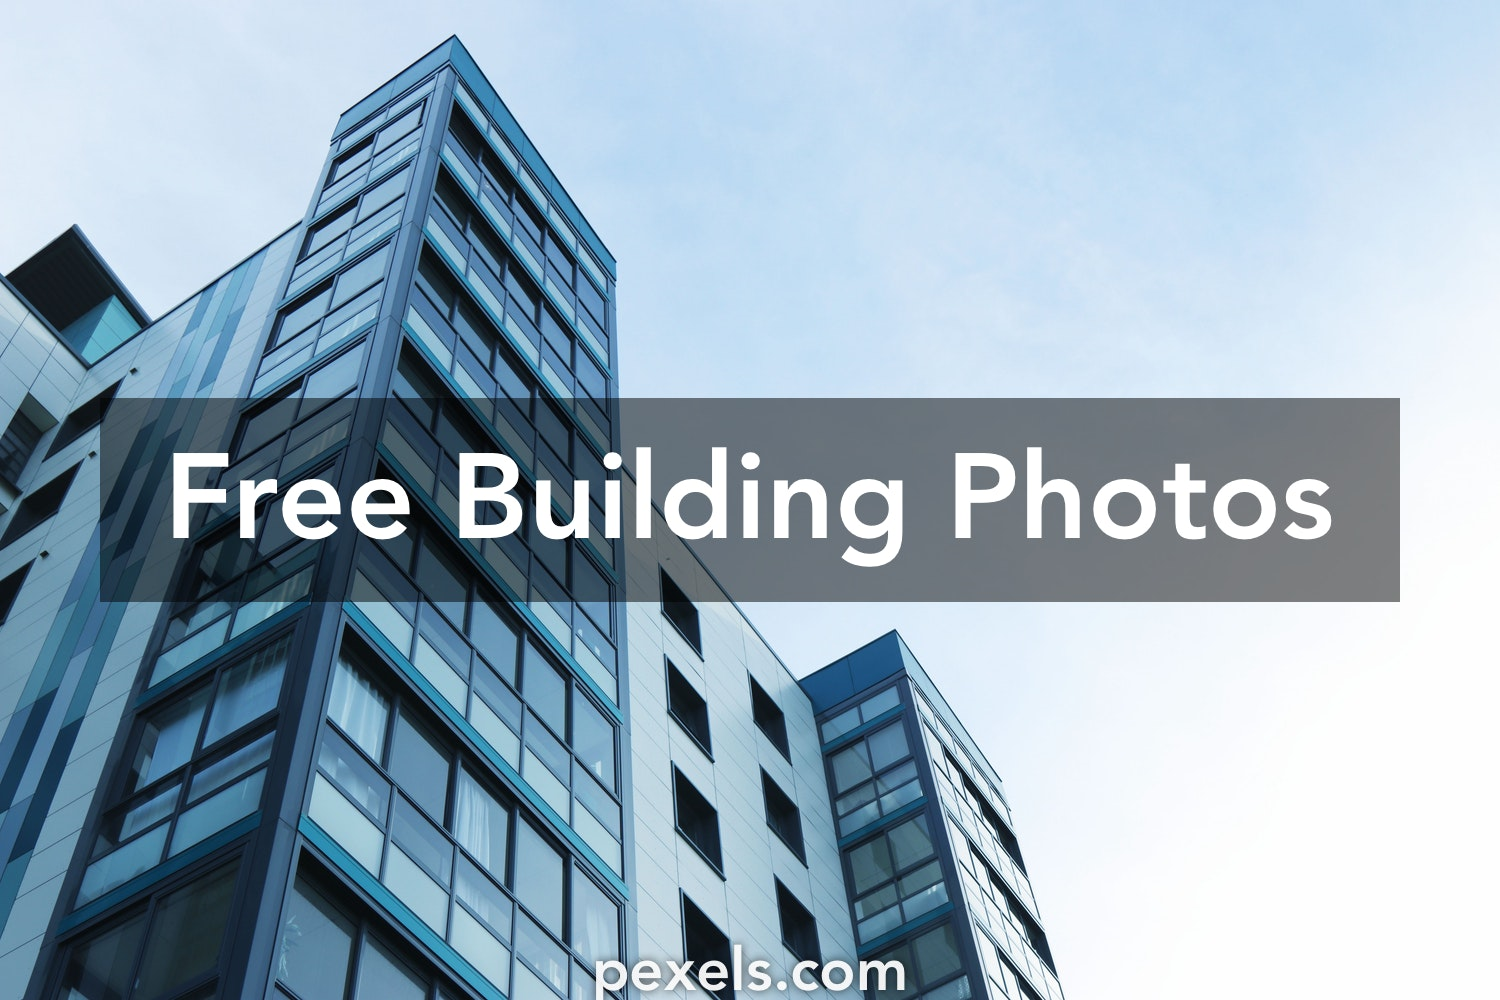 Free stock photos of building pexels for Build a house online free